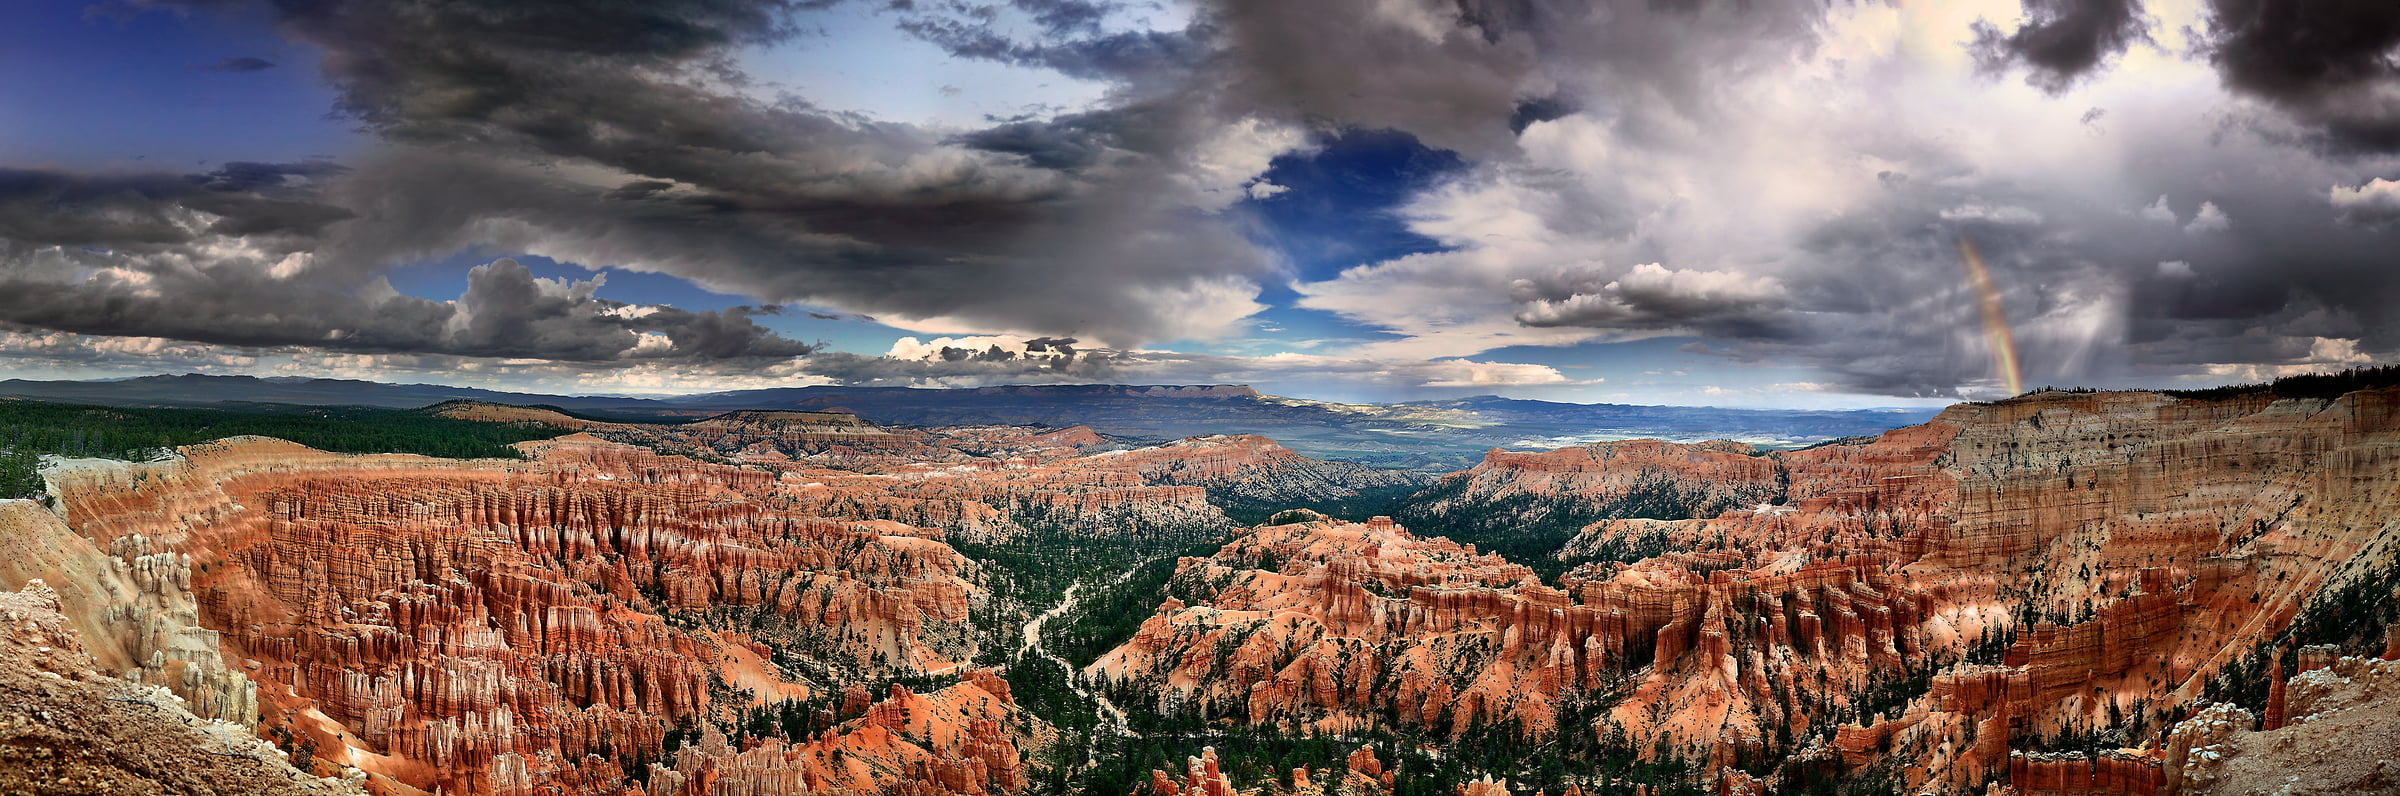 402 megapixels! A very high resolution panorama landscape photo of Bryce Canyon National Park with a rainbow; VAST photo created by Phil Crawshay in Bryce Canyon, Utah